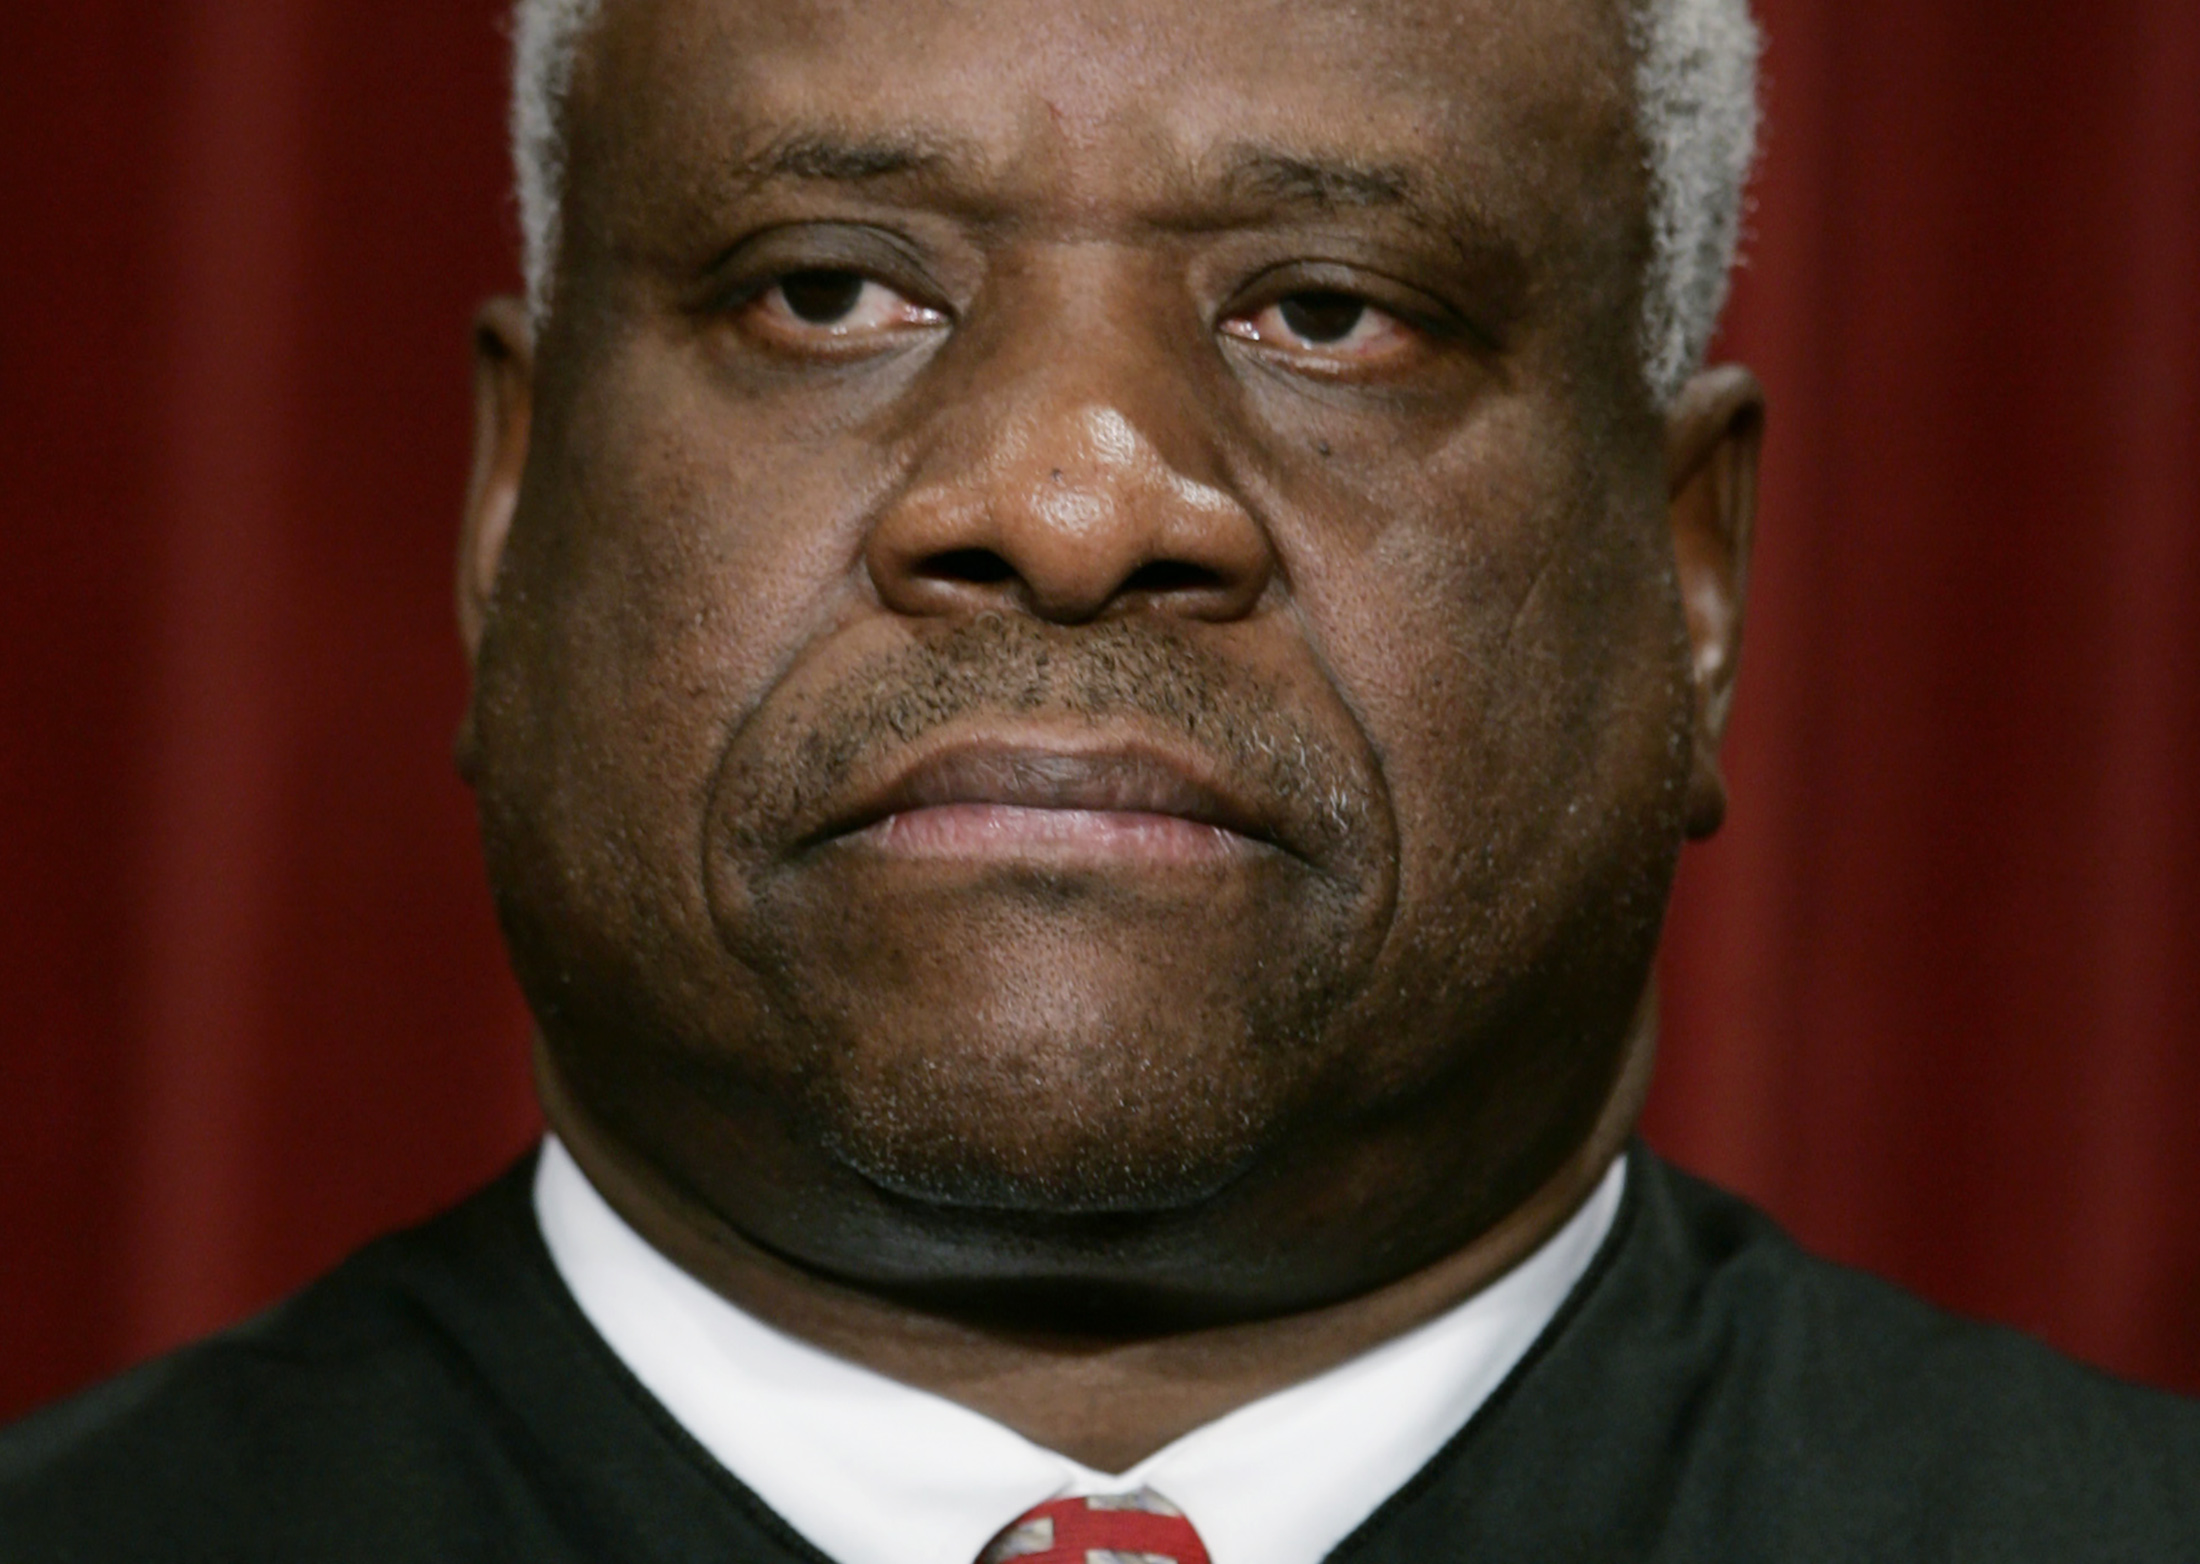 A lawyer accuses Justice Clarence Thomas of groping her in 1999 while she was a student